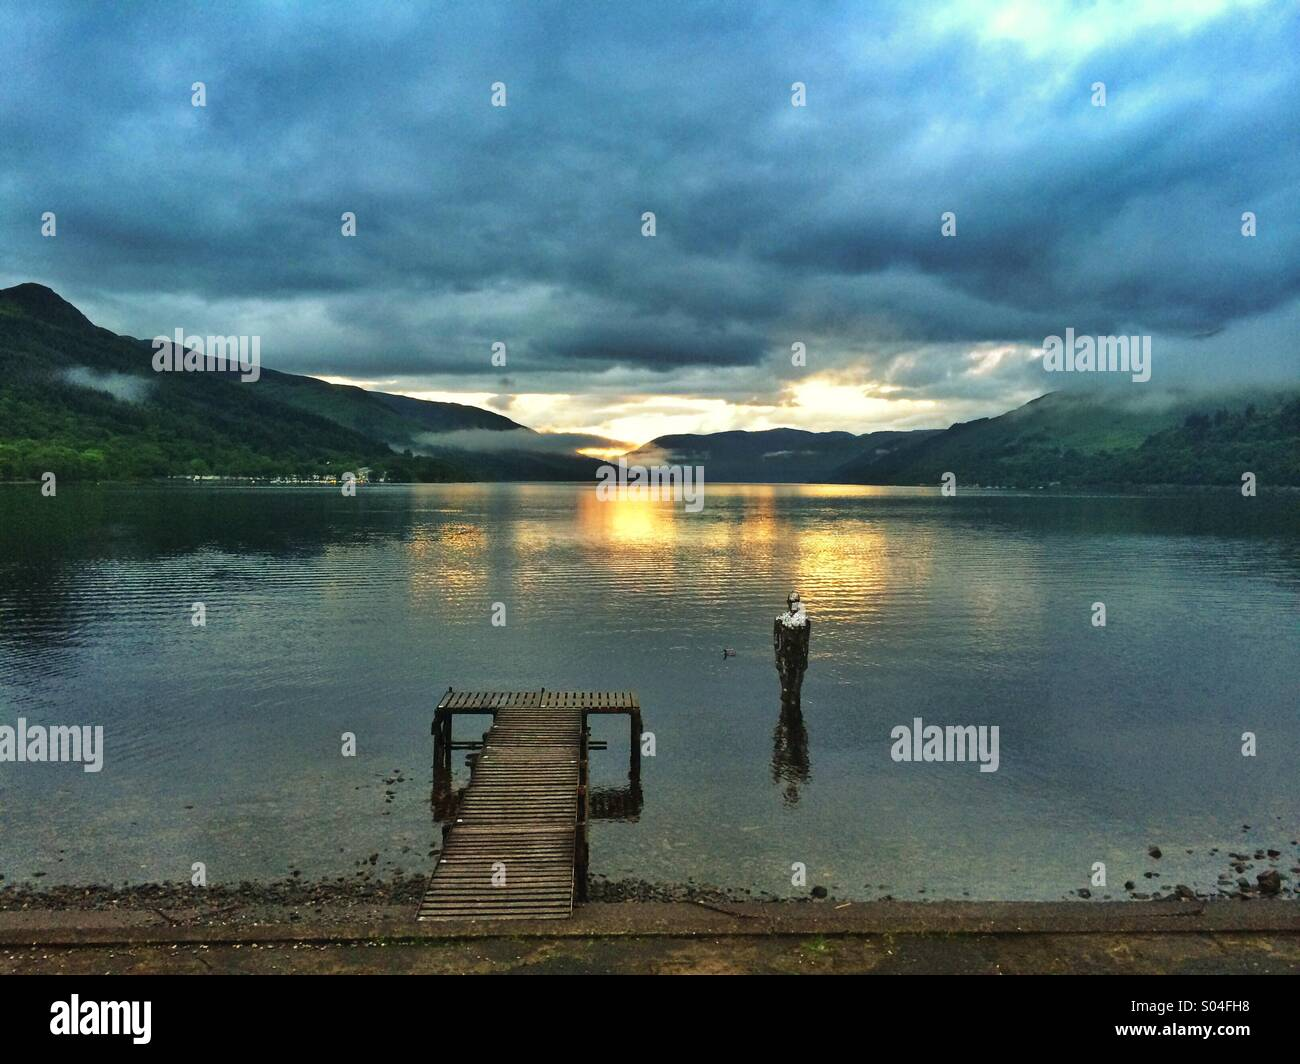 Mirror man of the loch. Loch earn, Scotland - Stock Image